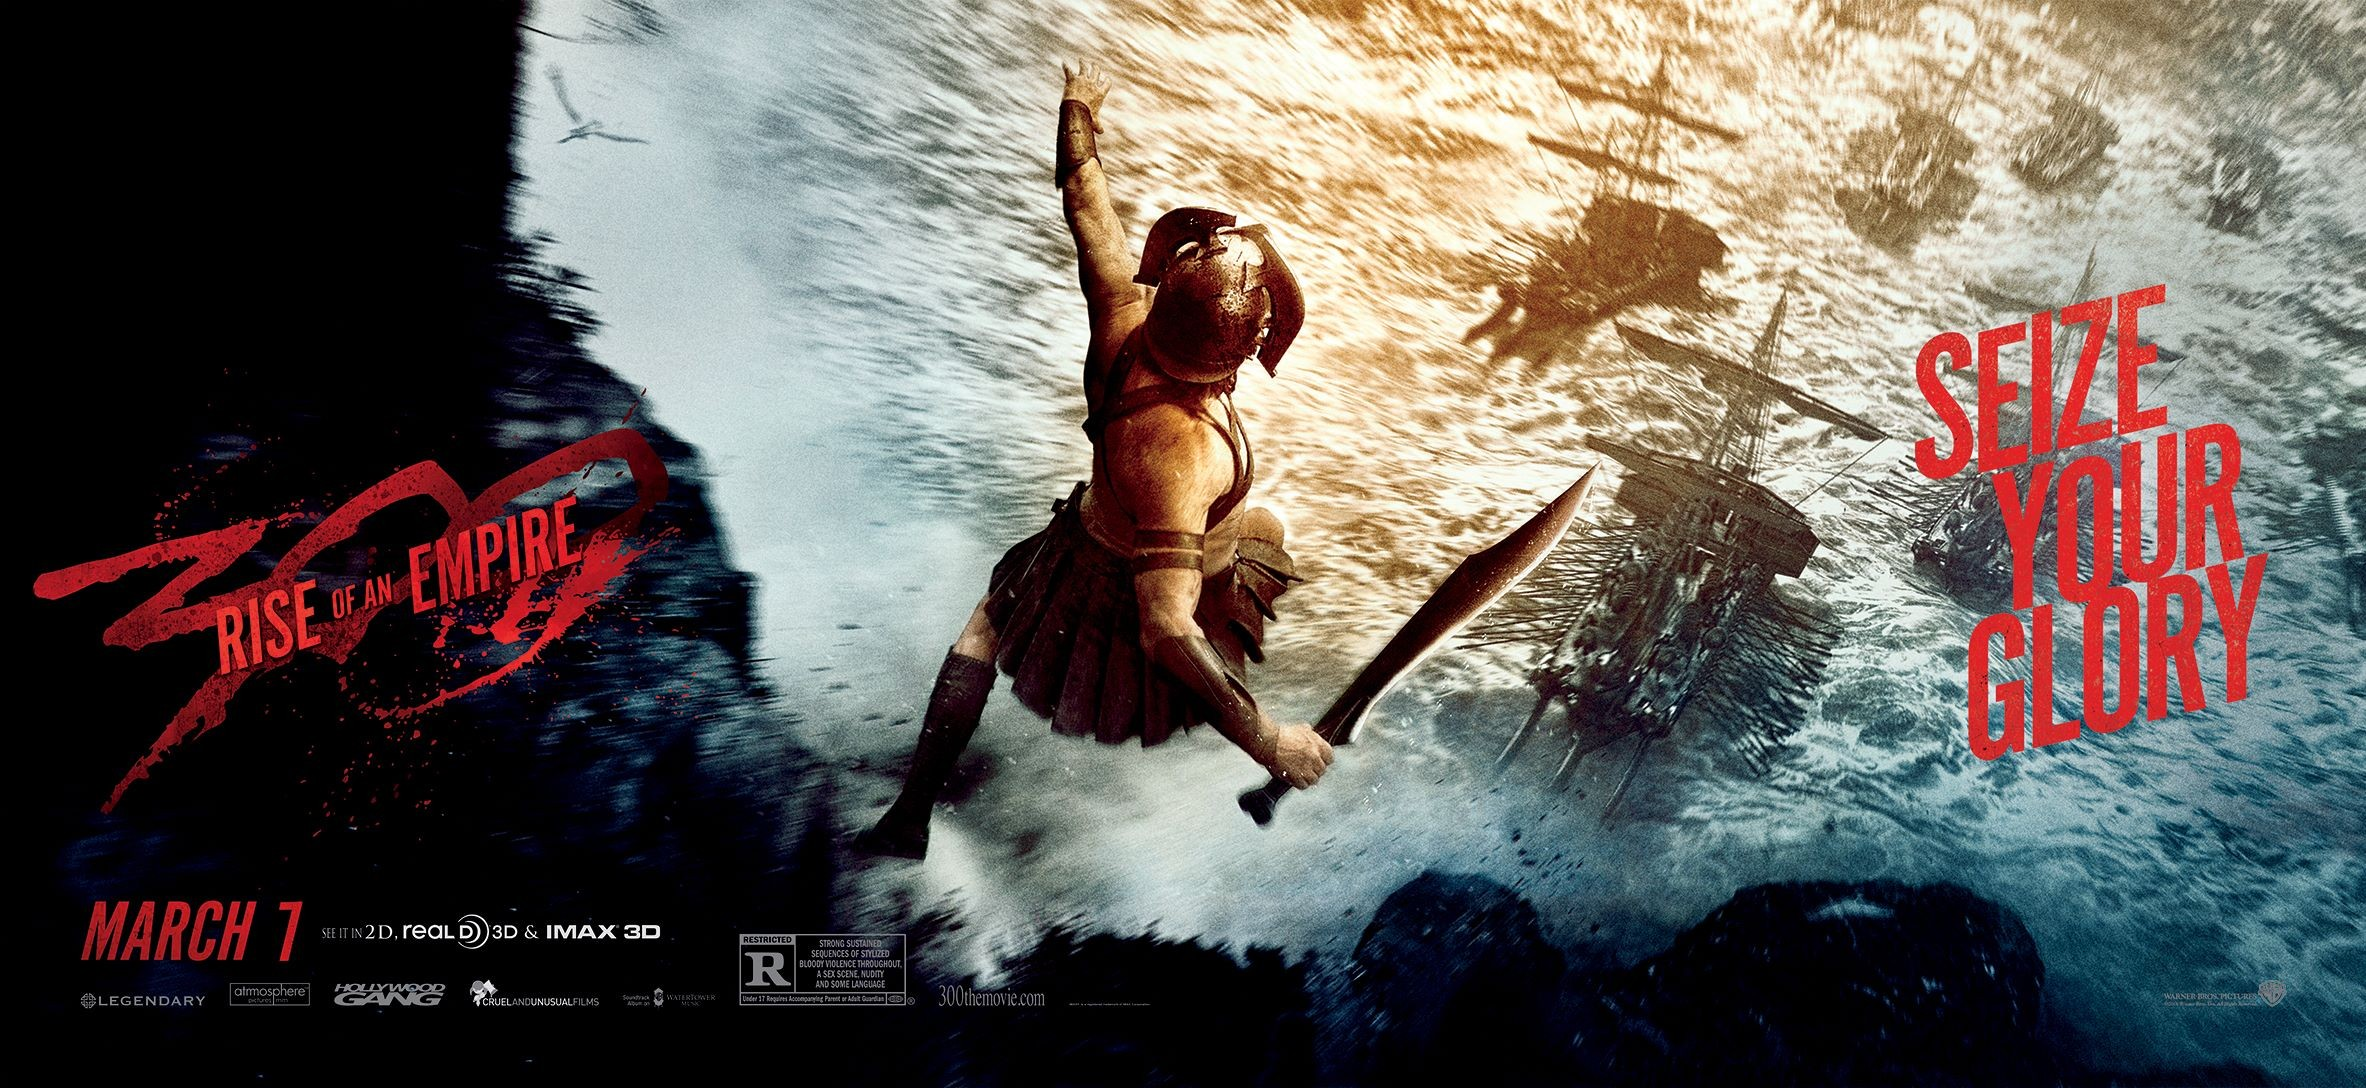 300 Rise of an Empire-Official Poster Banner PROMO BANNER-23JANEIRO2014-02